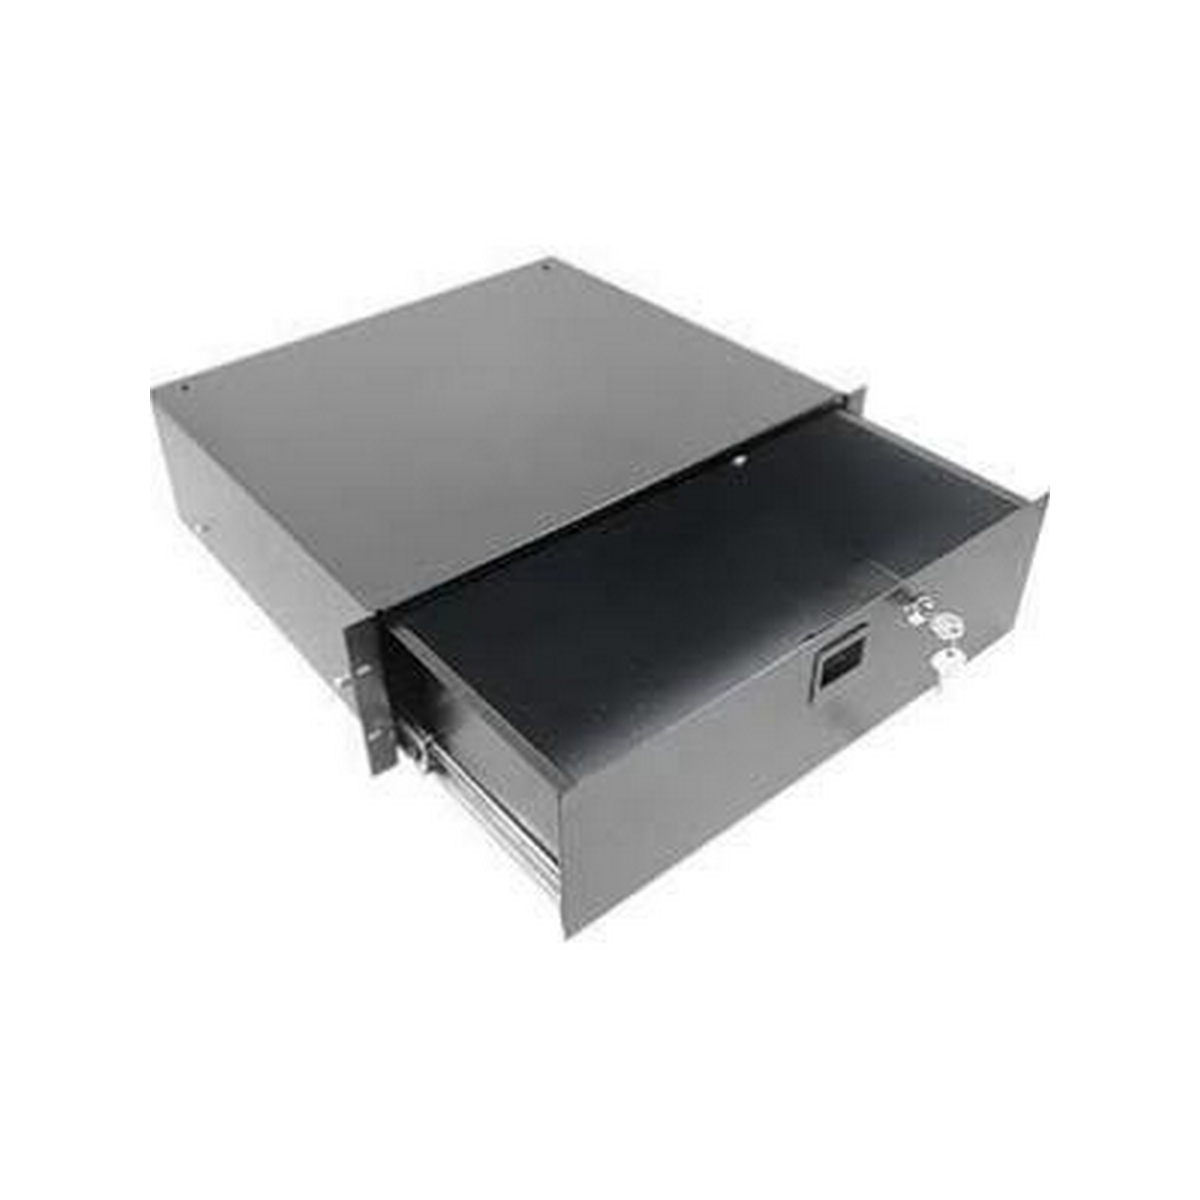 Penn Elcom 3234LK 4 Space rack drawer 15.25